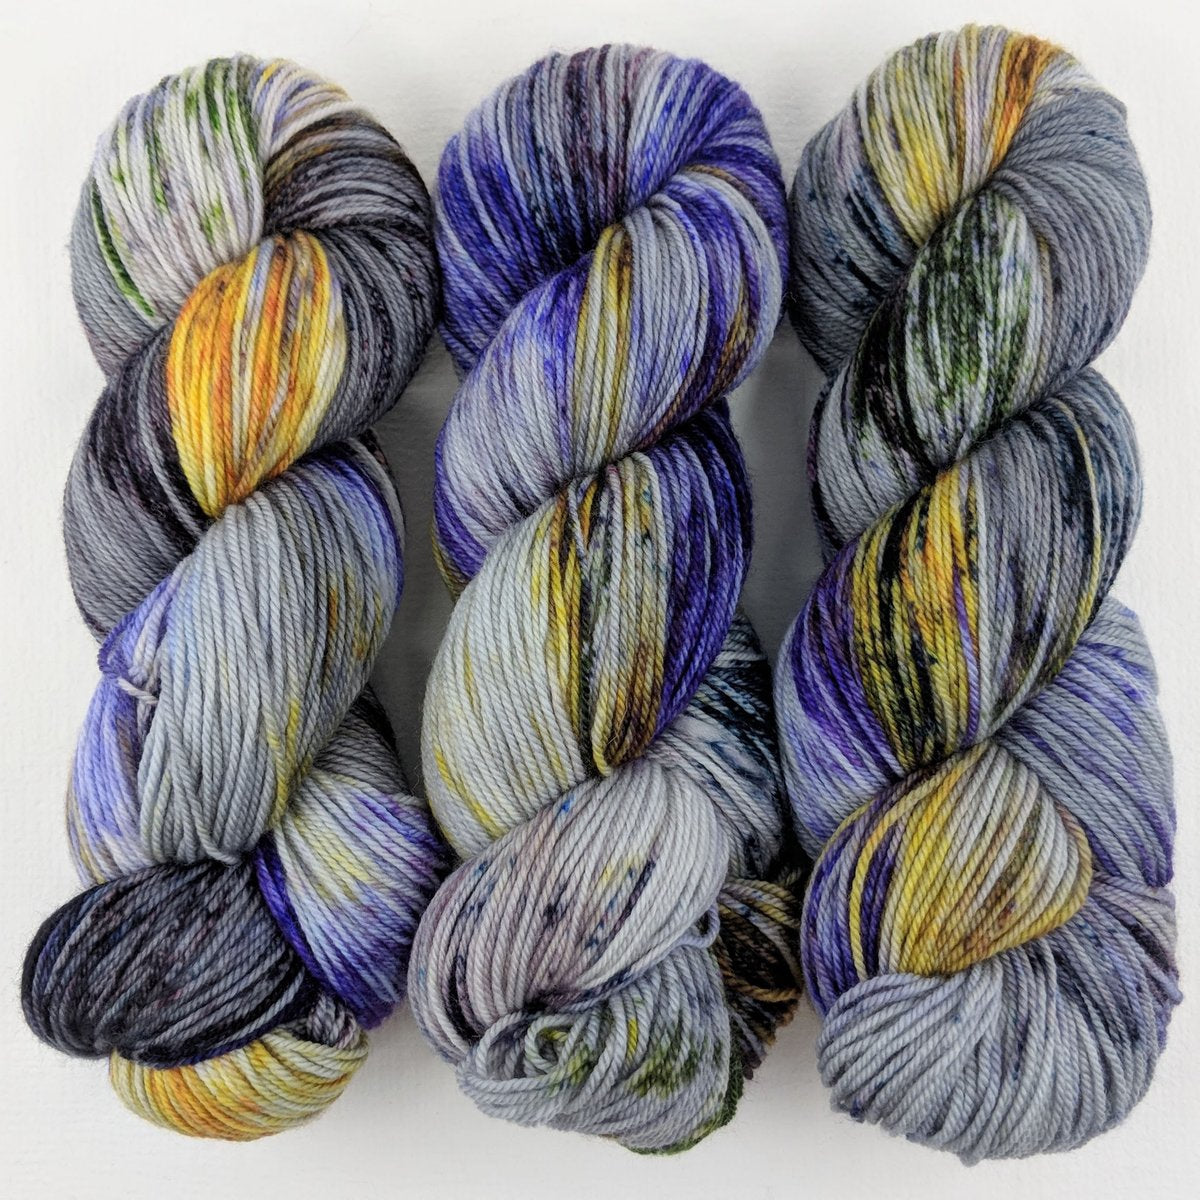 Mountain Primula - Merino Singles - Dyed Stock